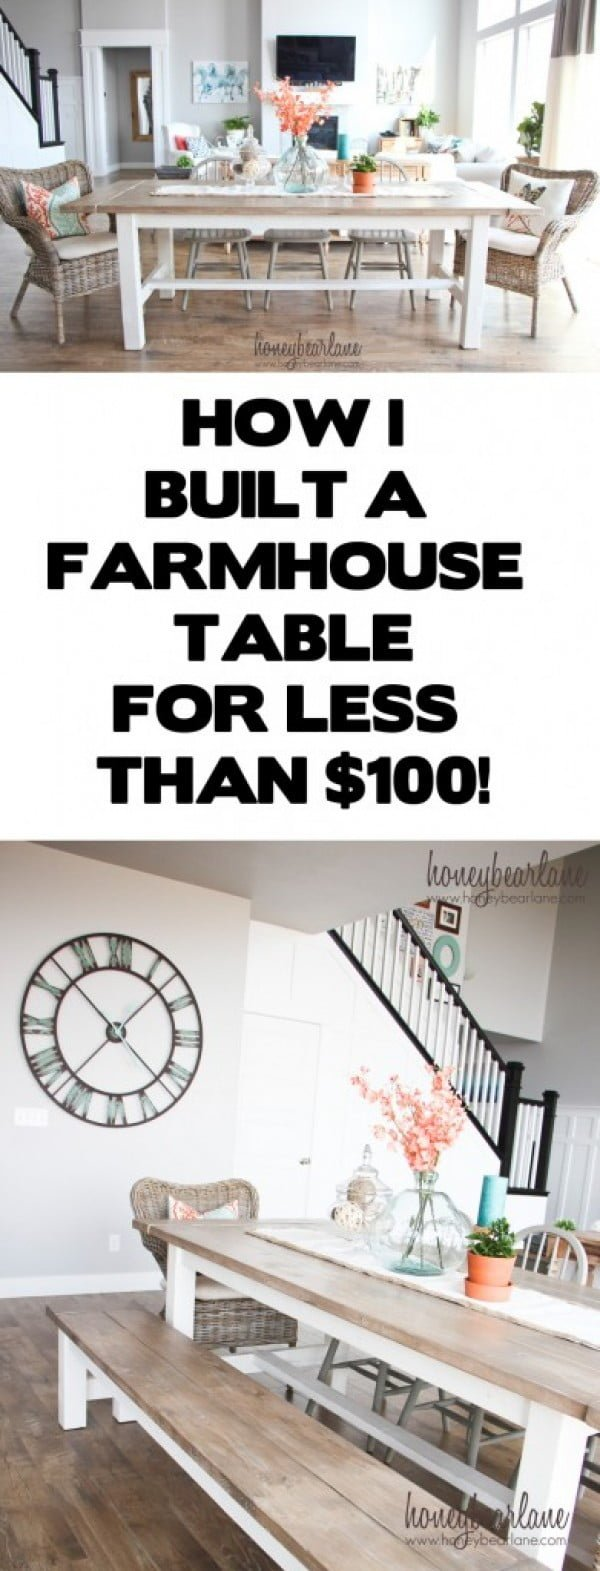 Check out how to make your own easy DIY farmhouse table @istandarddesign